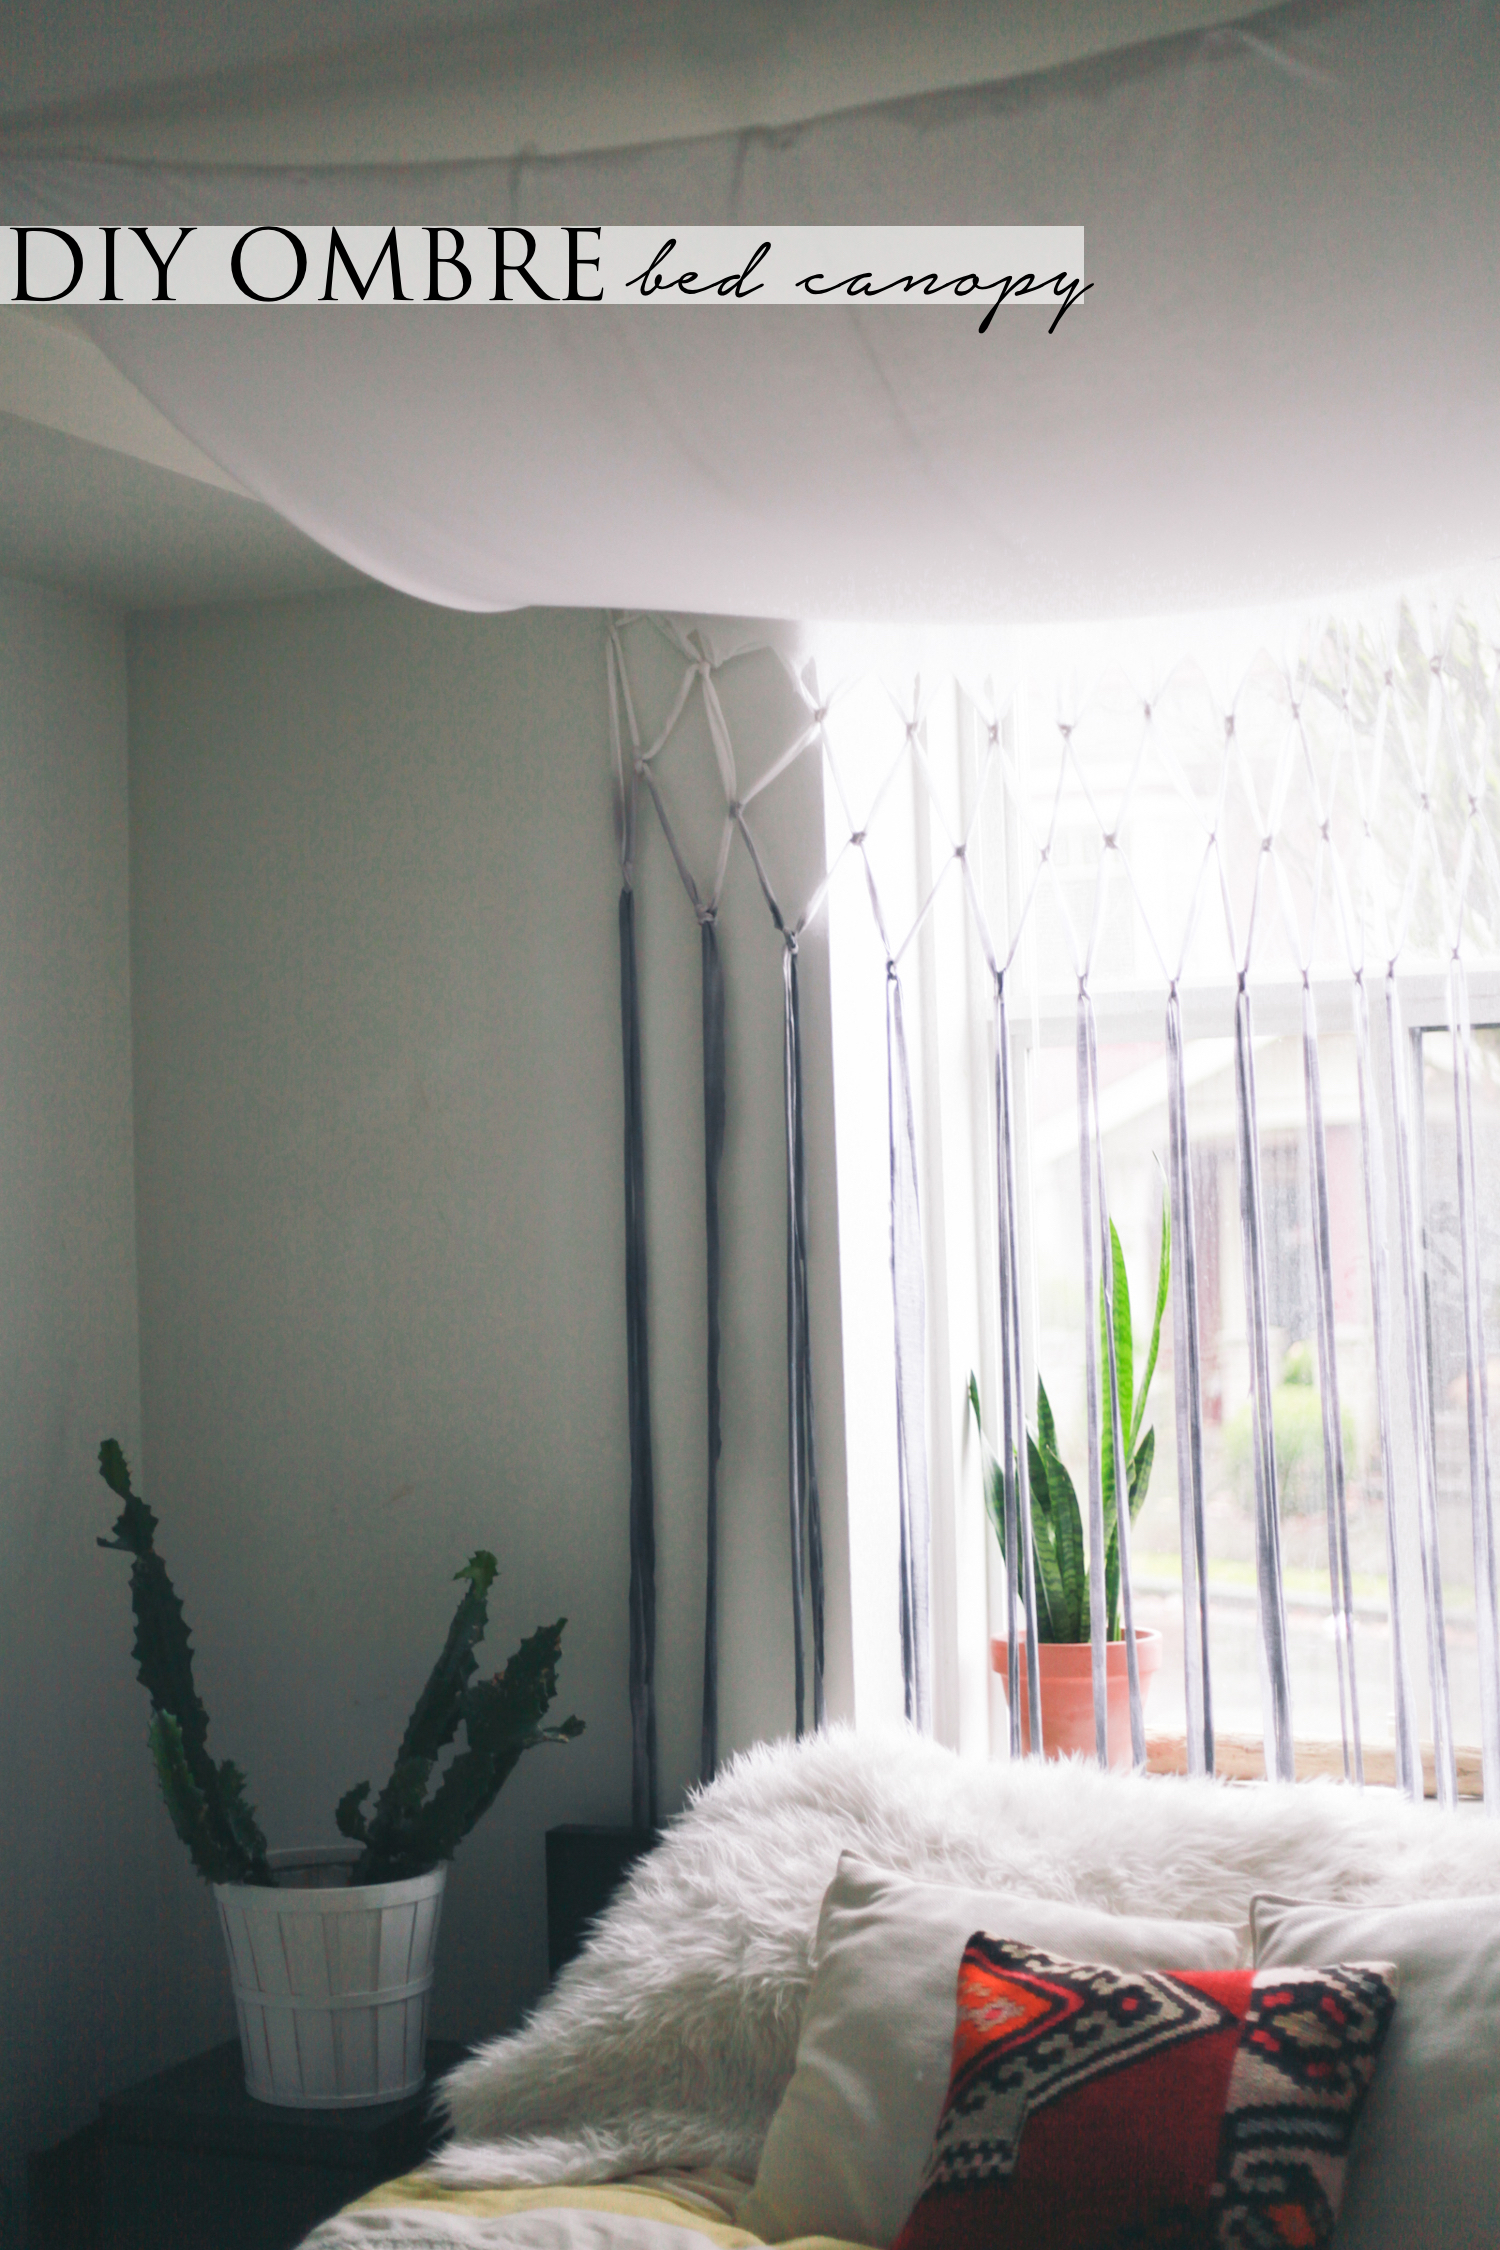 Diy Ombre Bed Canopy Treasures Travels